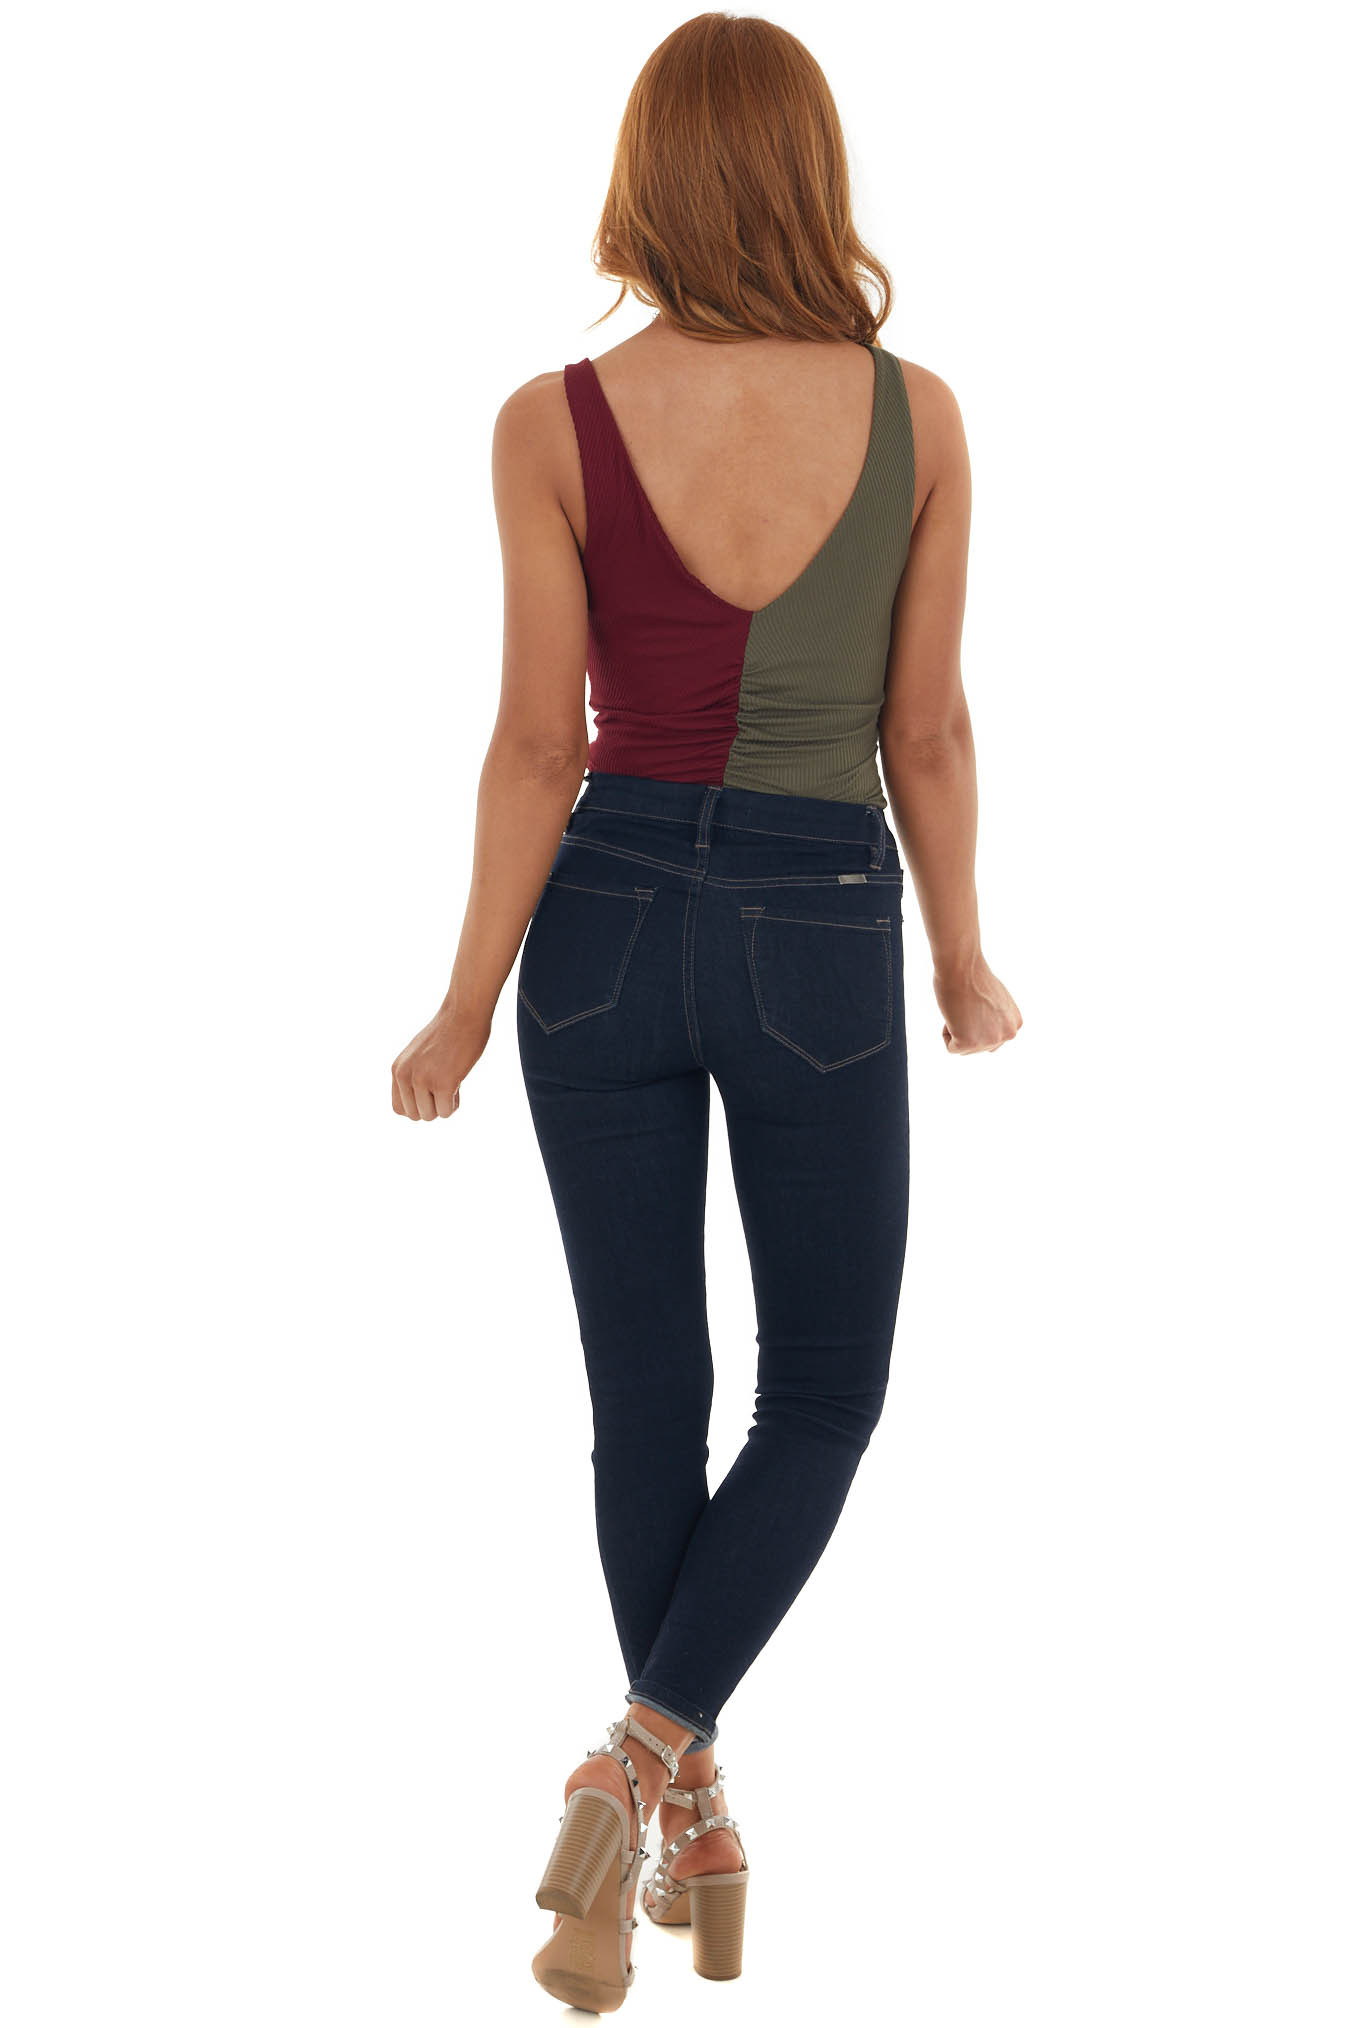 Dark Olive and Wine Sleeveless Bodysuit with Ruching Details